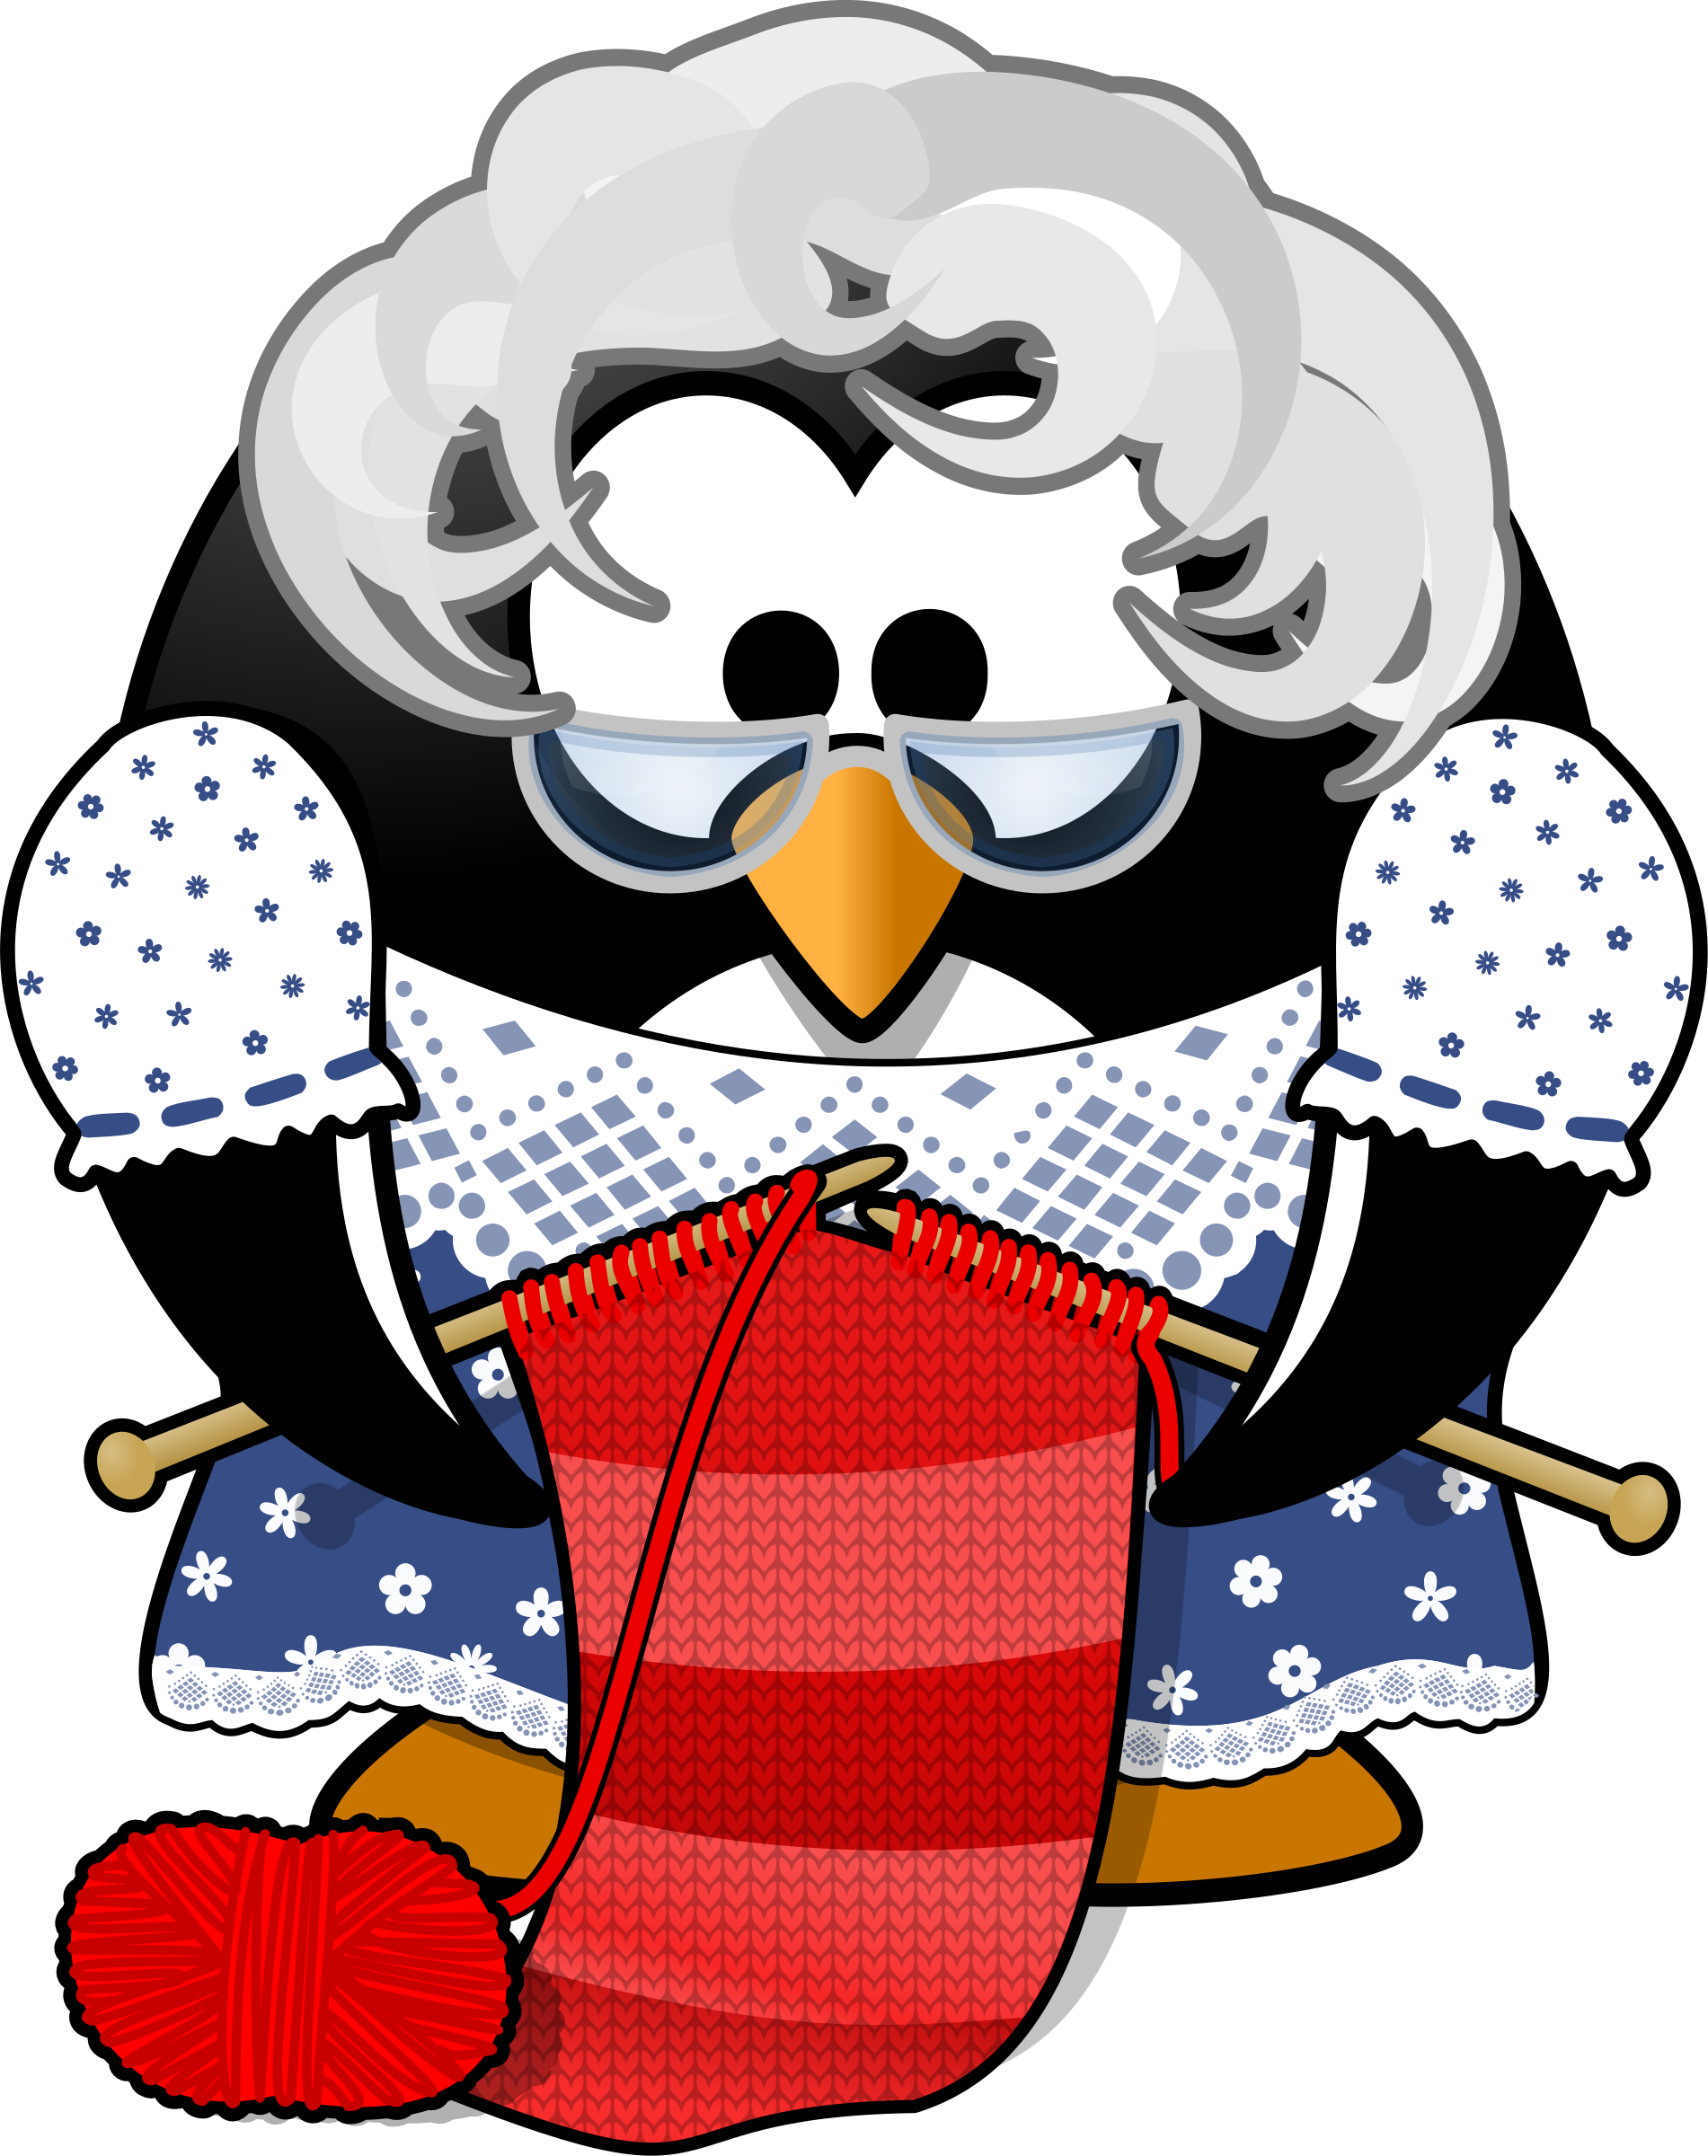 Grandma clipart storytelling. Penguin icons png free